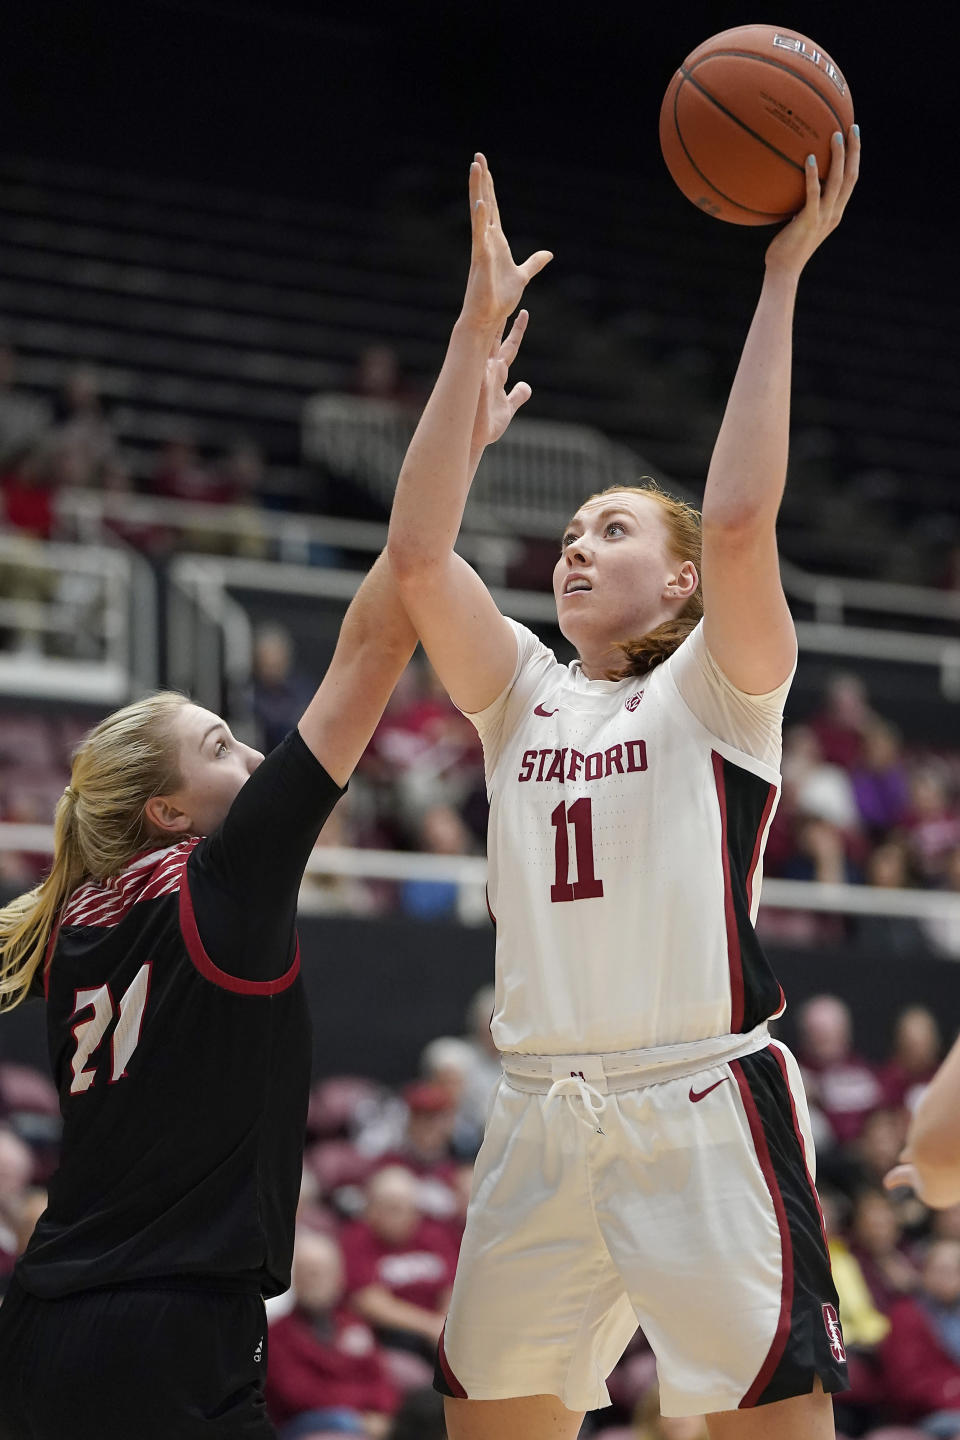 Stanford forward Ashten Prechtel (11) shoots over Eastern Washington forward Milly Knowles (21) during the first half of an NCAA college basketball game Tuesday, Nov. 5, 2019, in Stanford, Calif. (AP Photo/Tony Avelar)